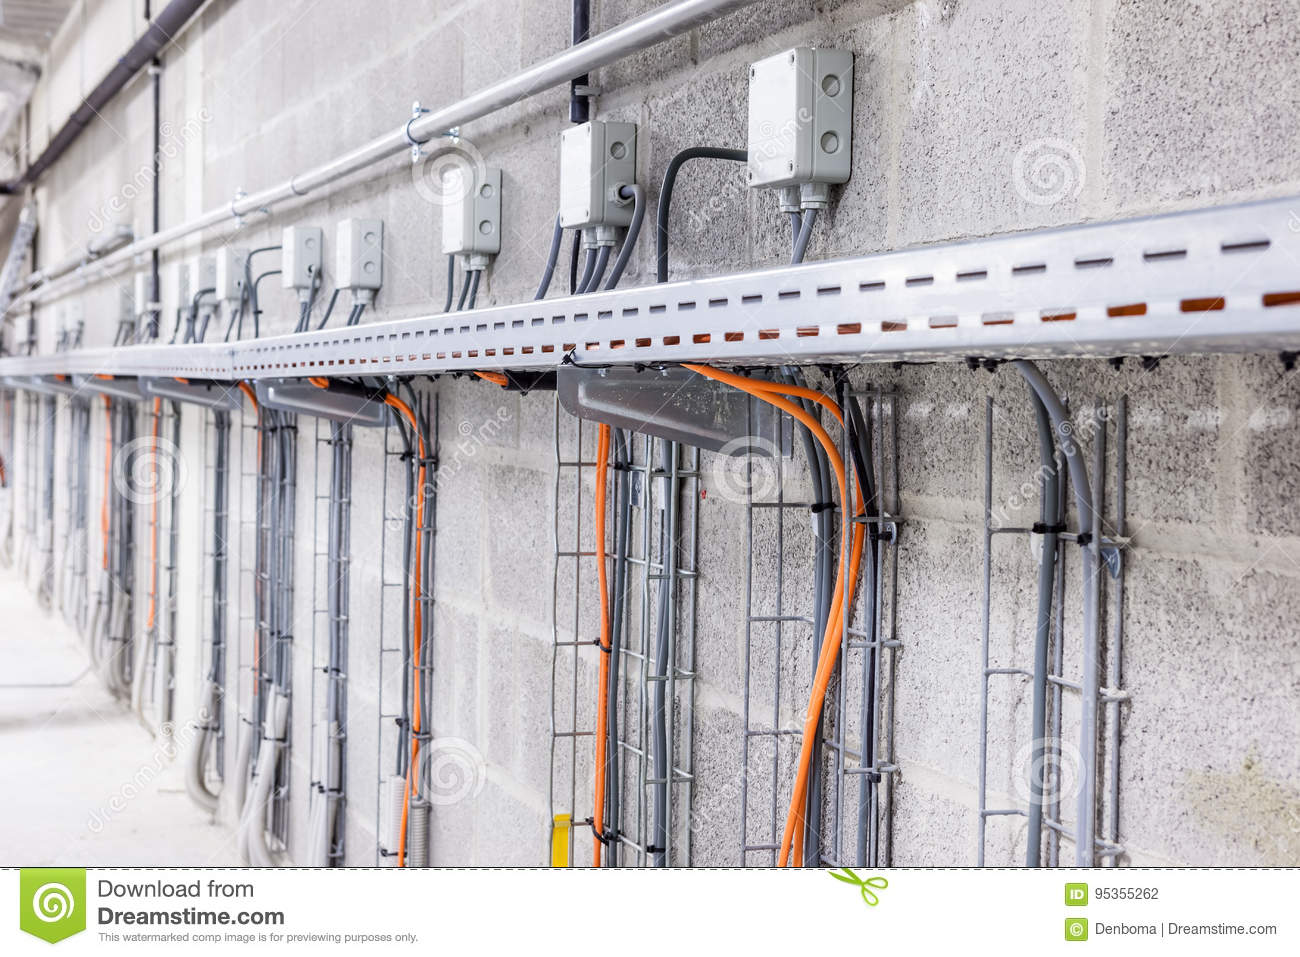 Electric cable duct stock photo. Image of architecture - 95355262